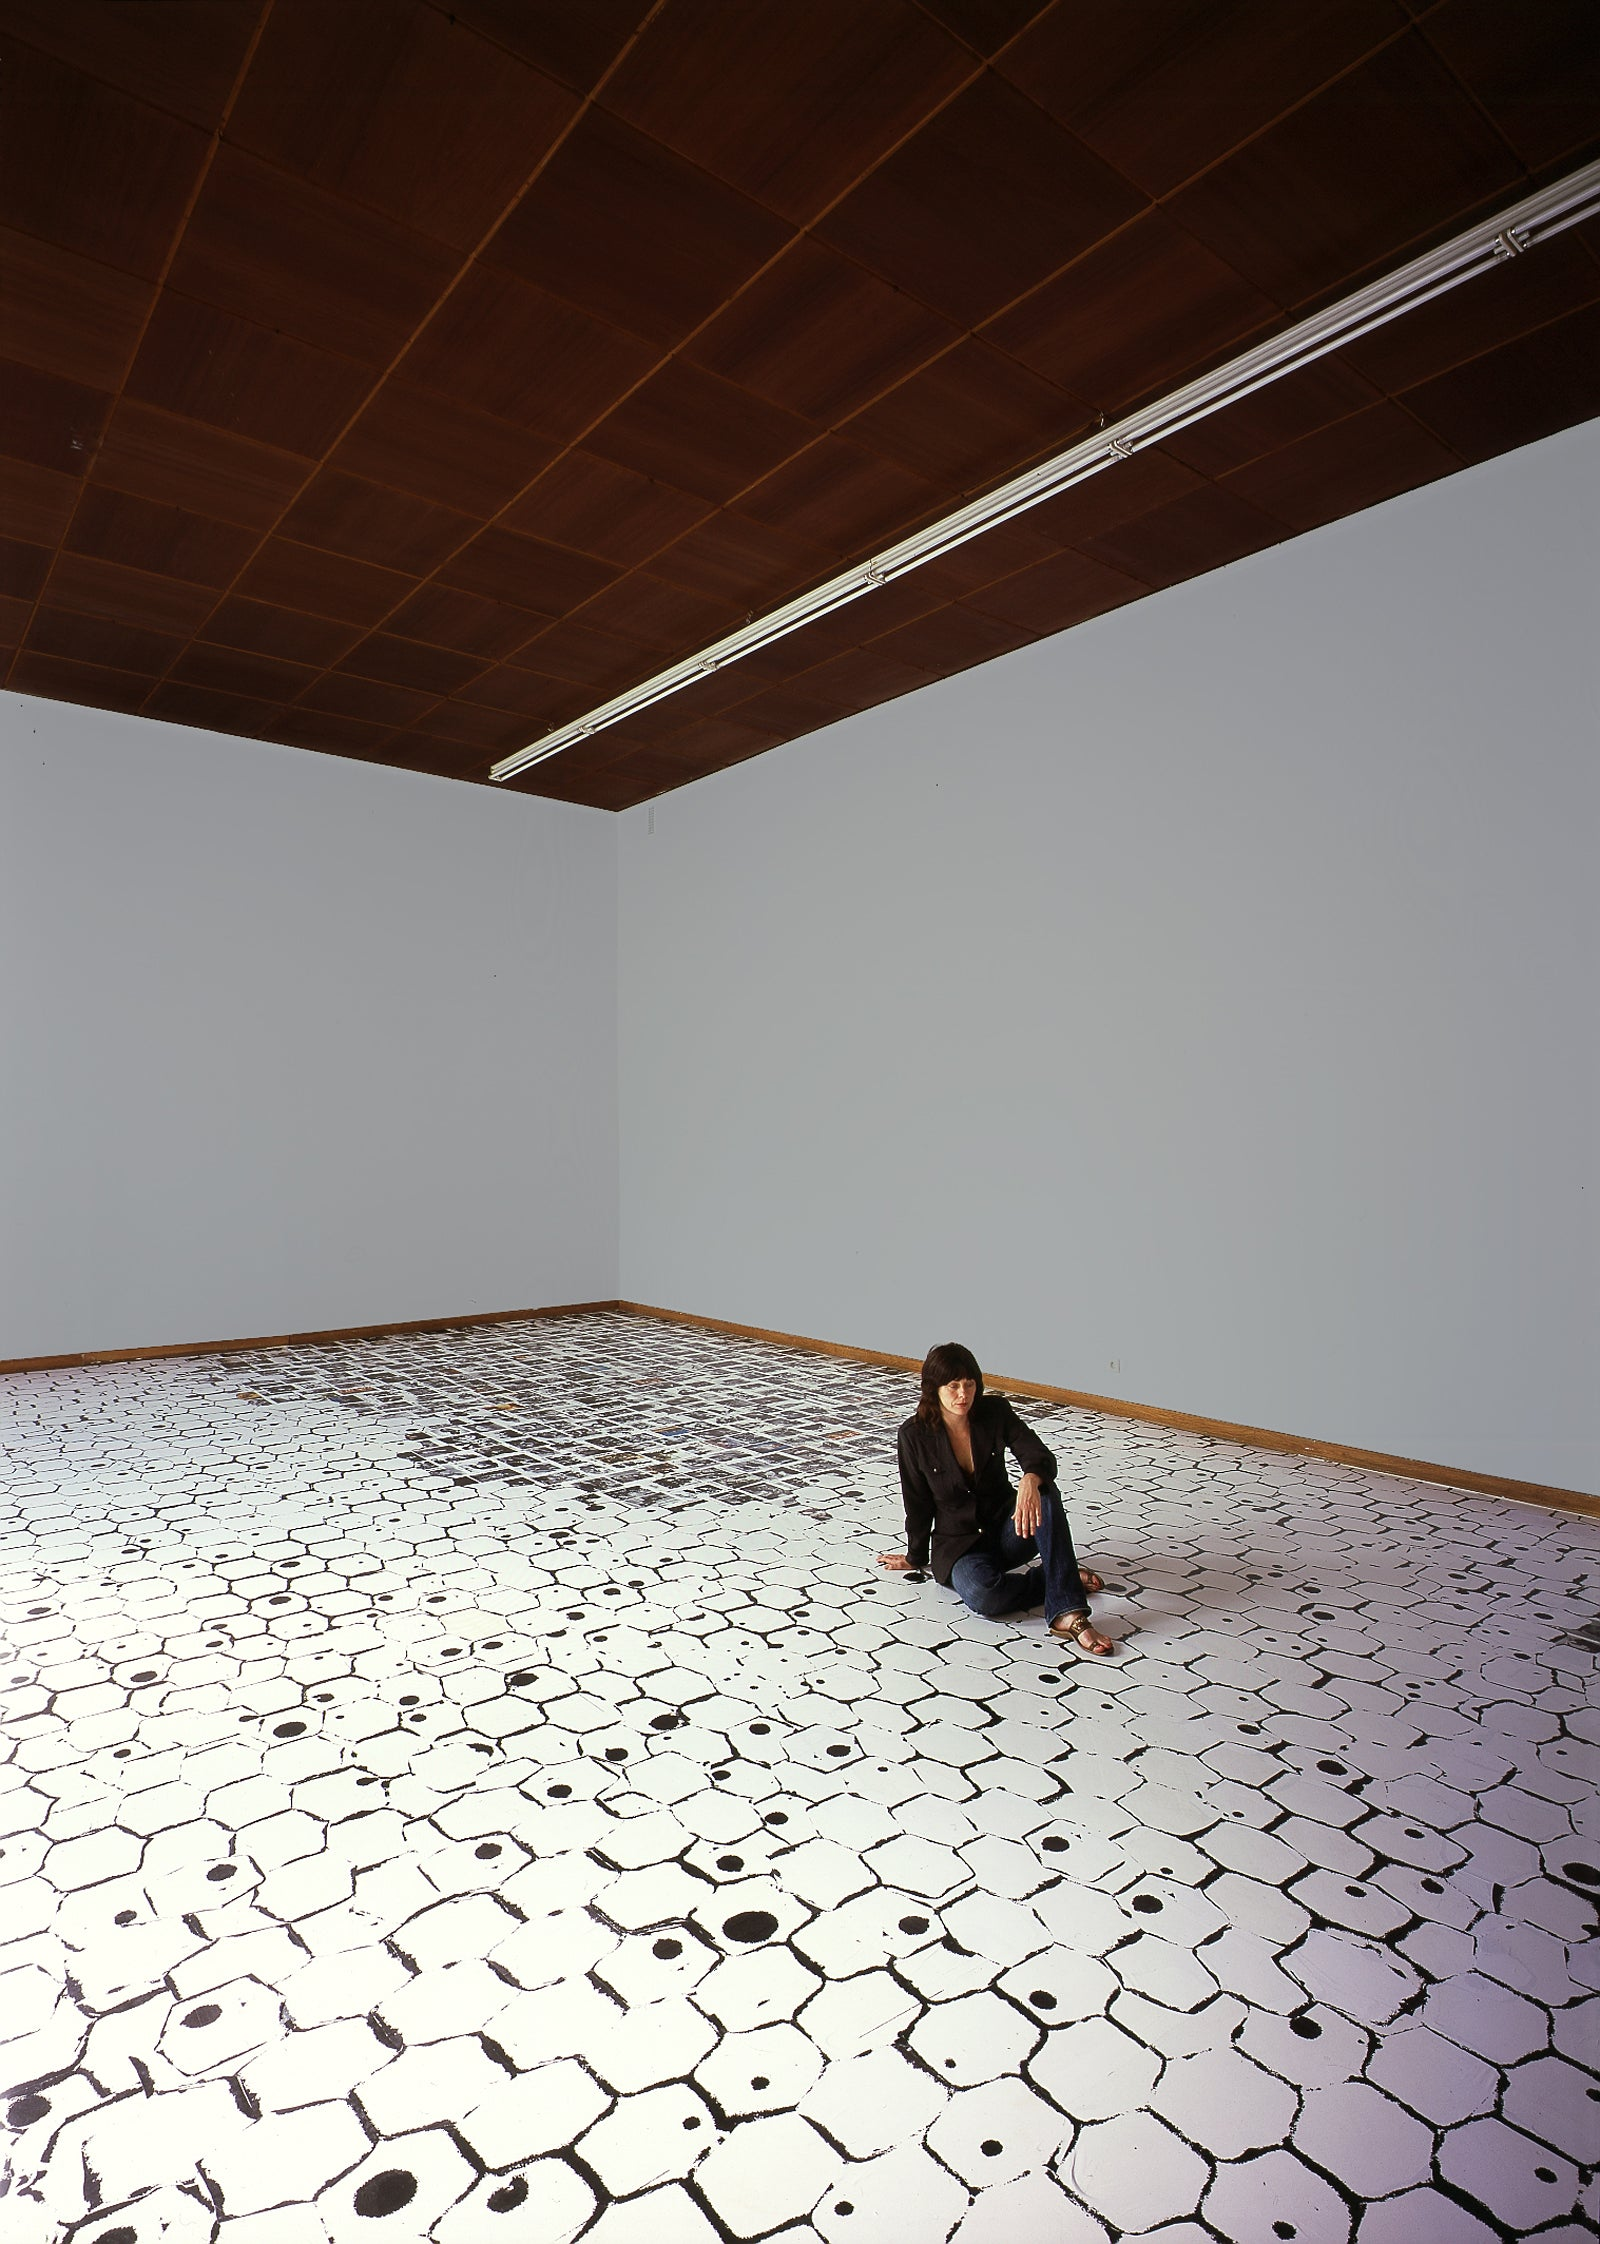 Meg Cranston, Rock Bottom, Installation view, 2005, Galerie Michael Janssen, Cologne